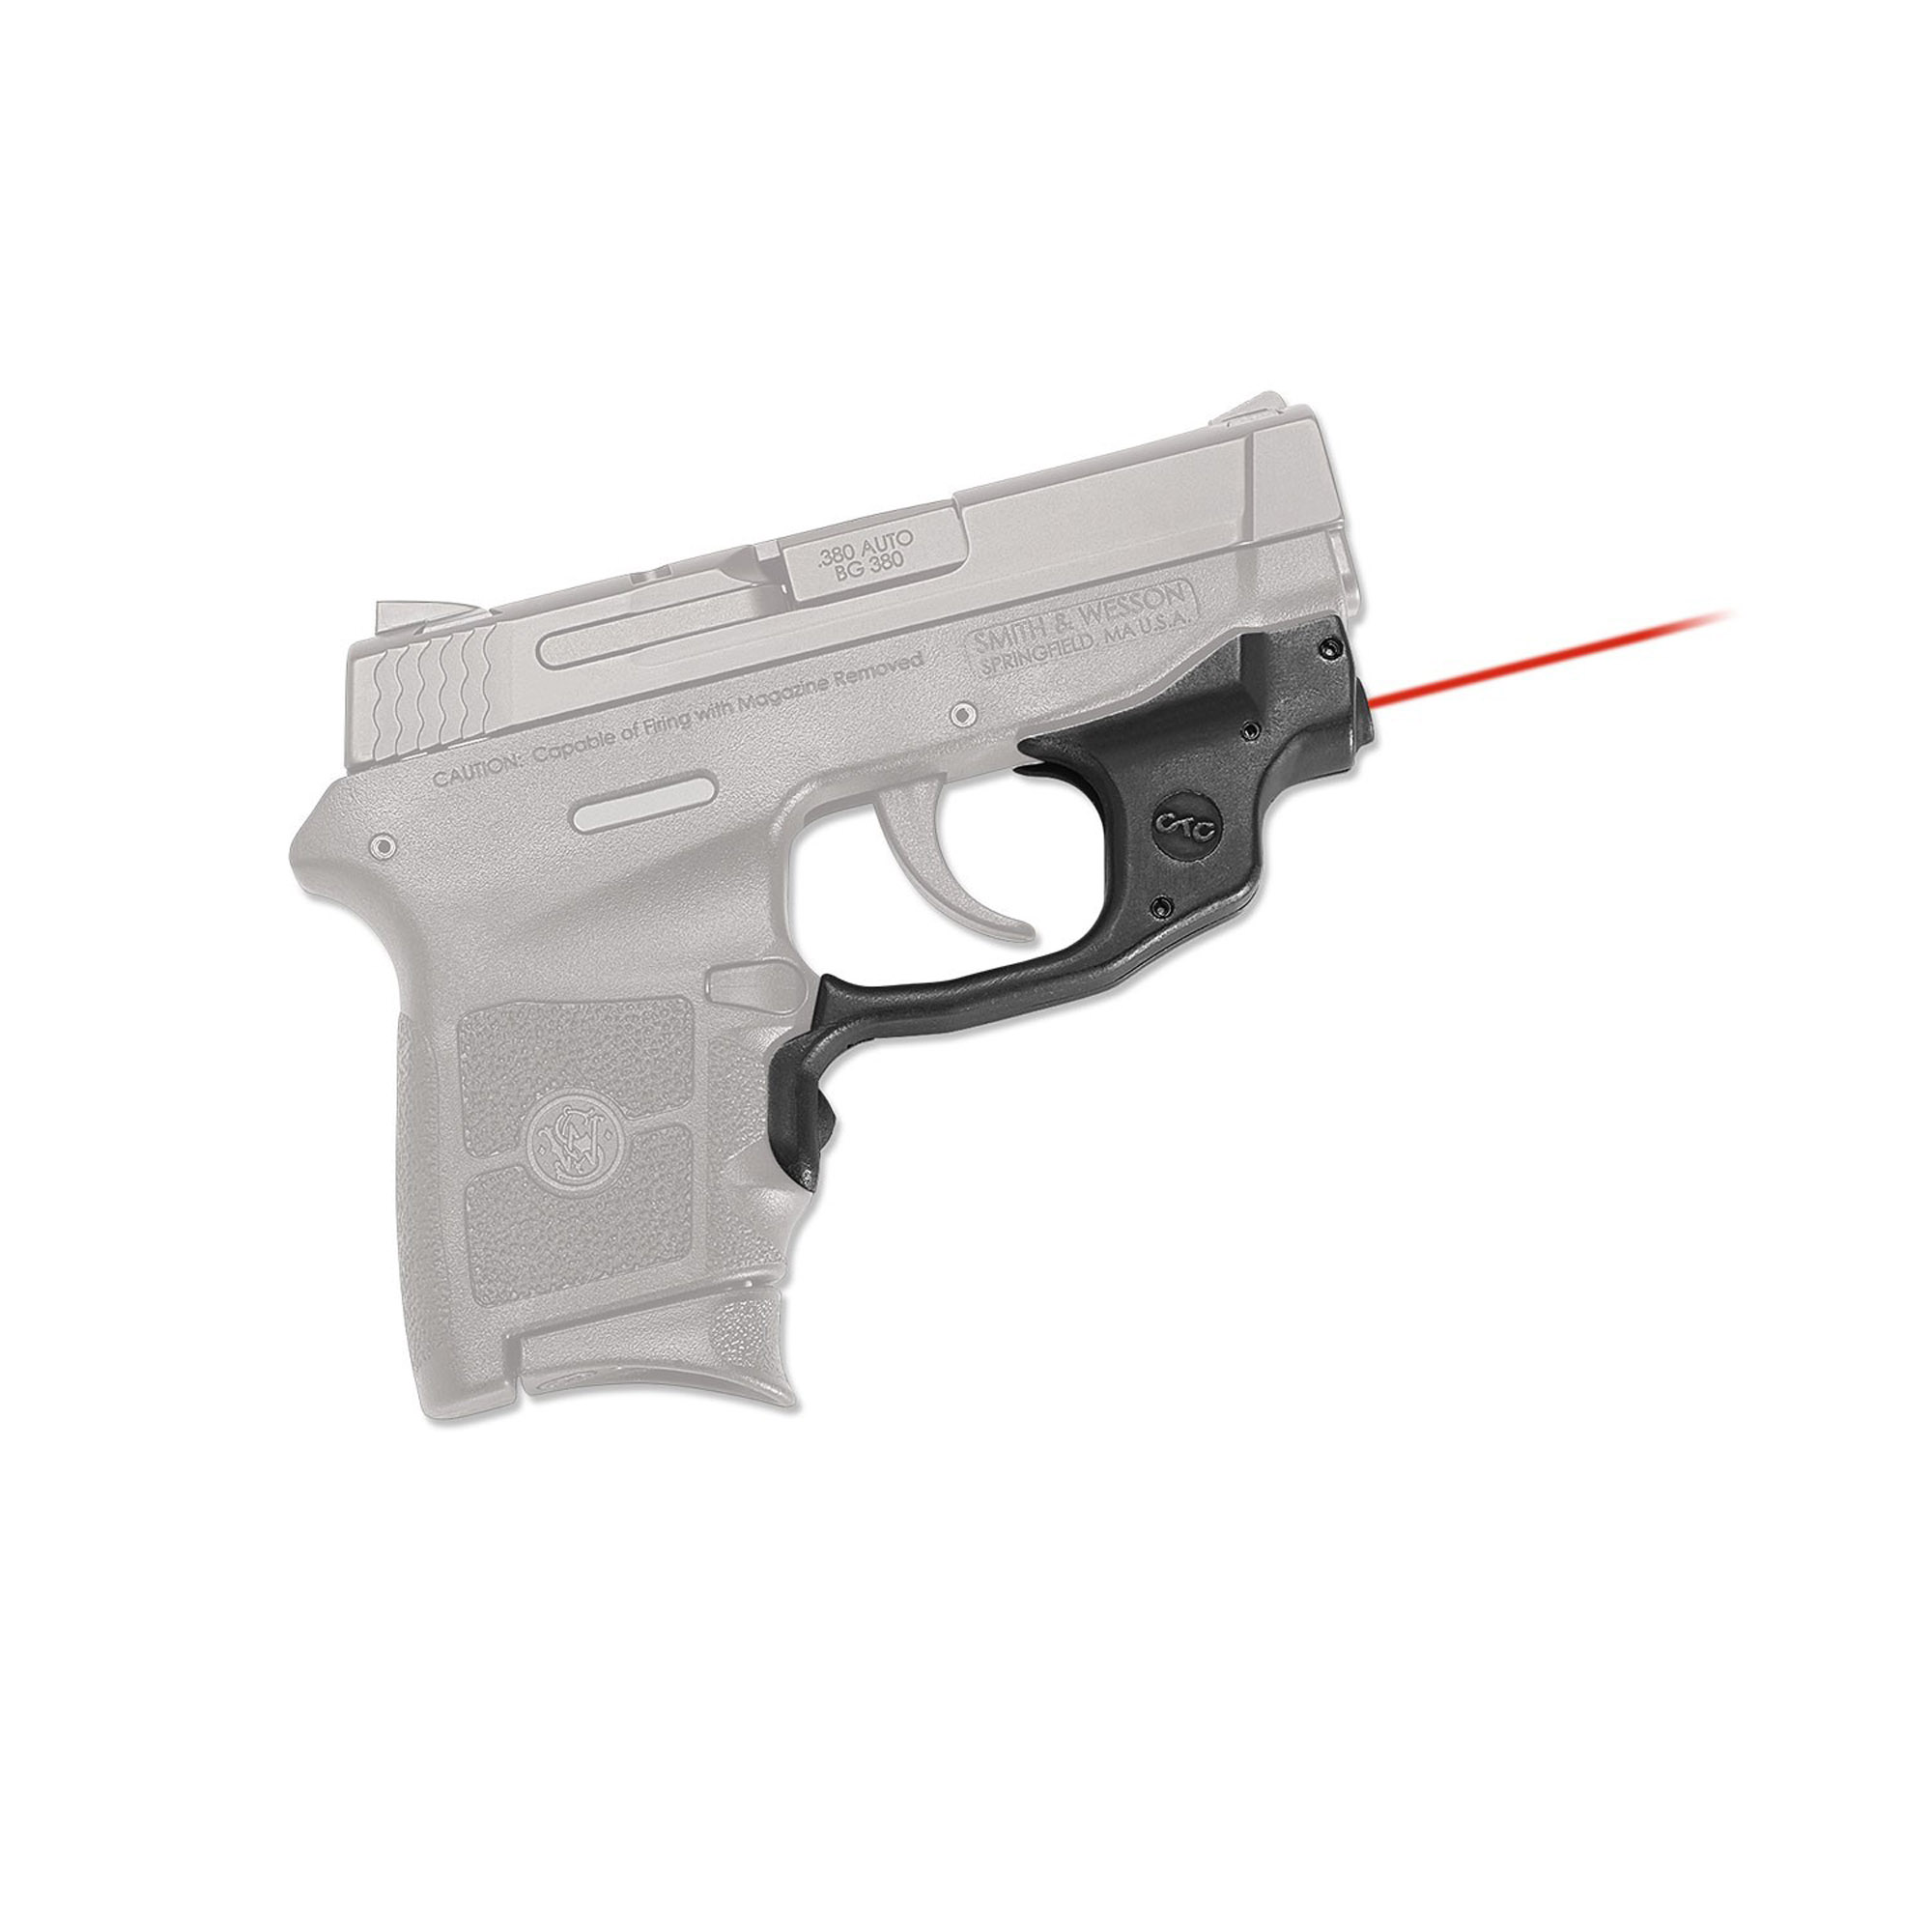 Crimson Trace Smith and Wesson M&P Bodyguard  380 Red Laser LG-454